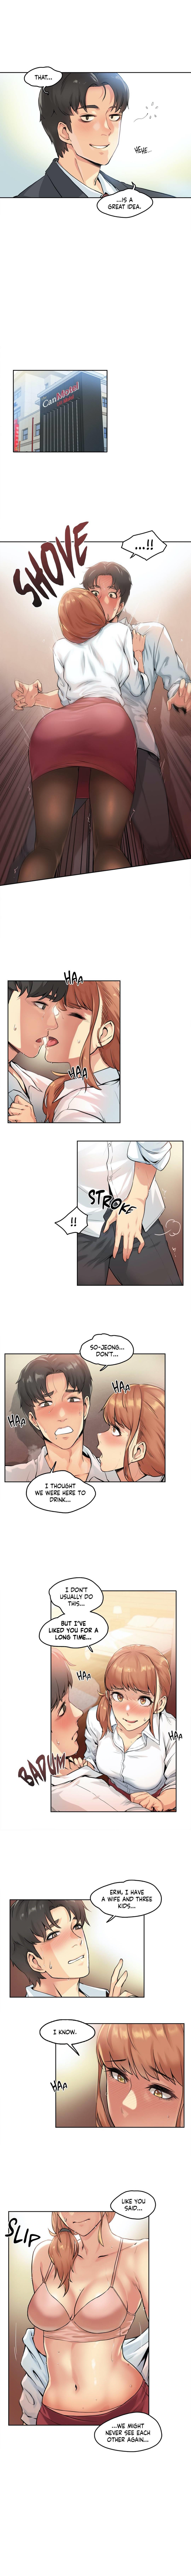 DADDY'S WILD OATS | Surrogate Father Ch. 1-2 7